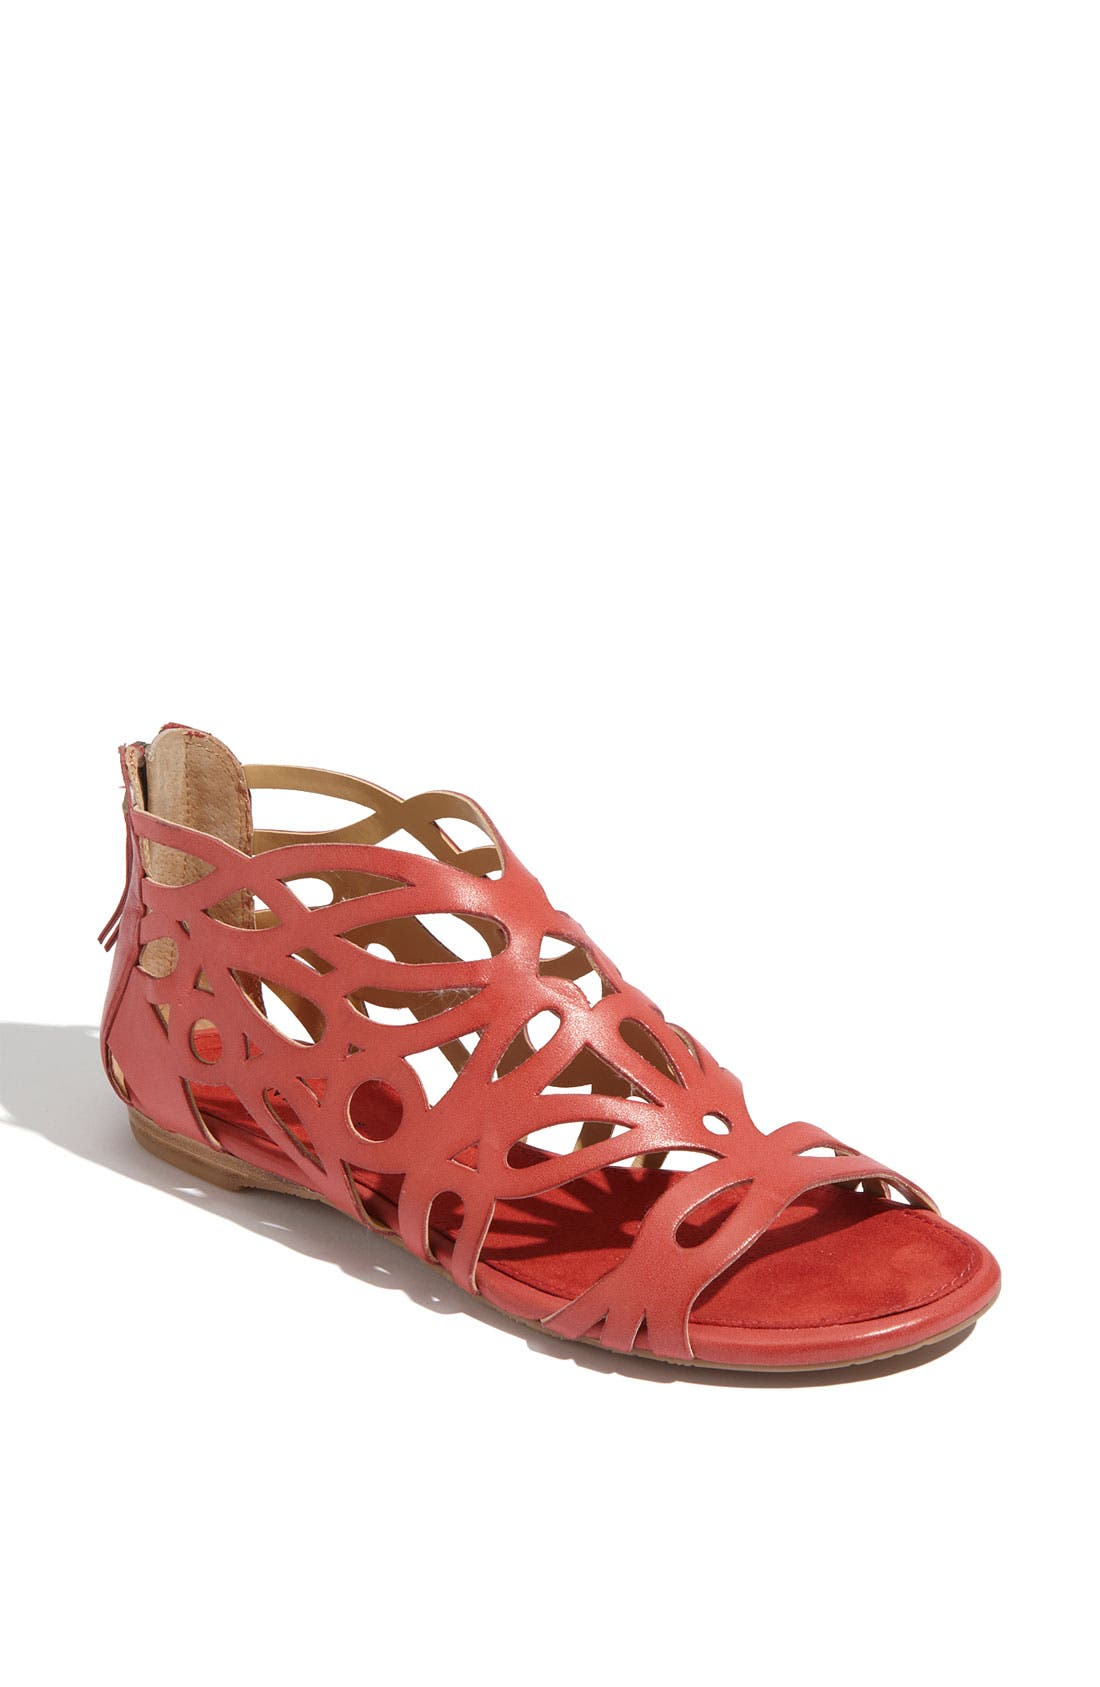 'Tali' Sandal,                         Main,                         color, Red Leather